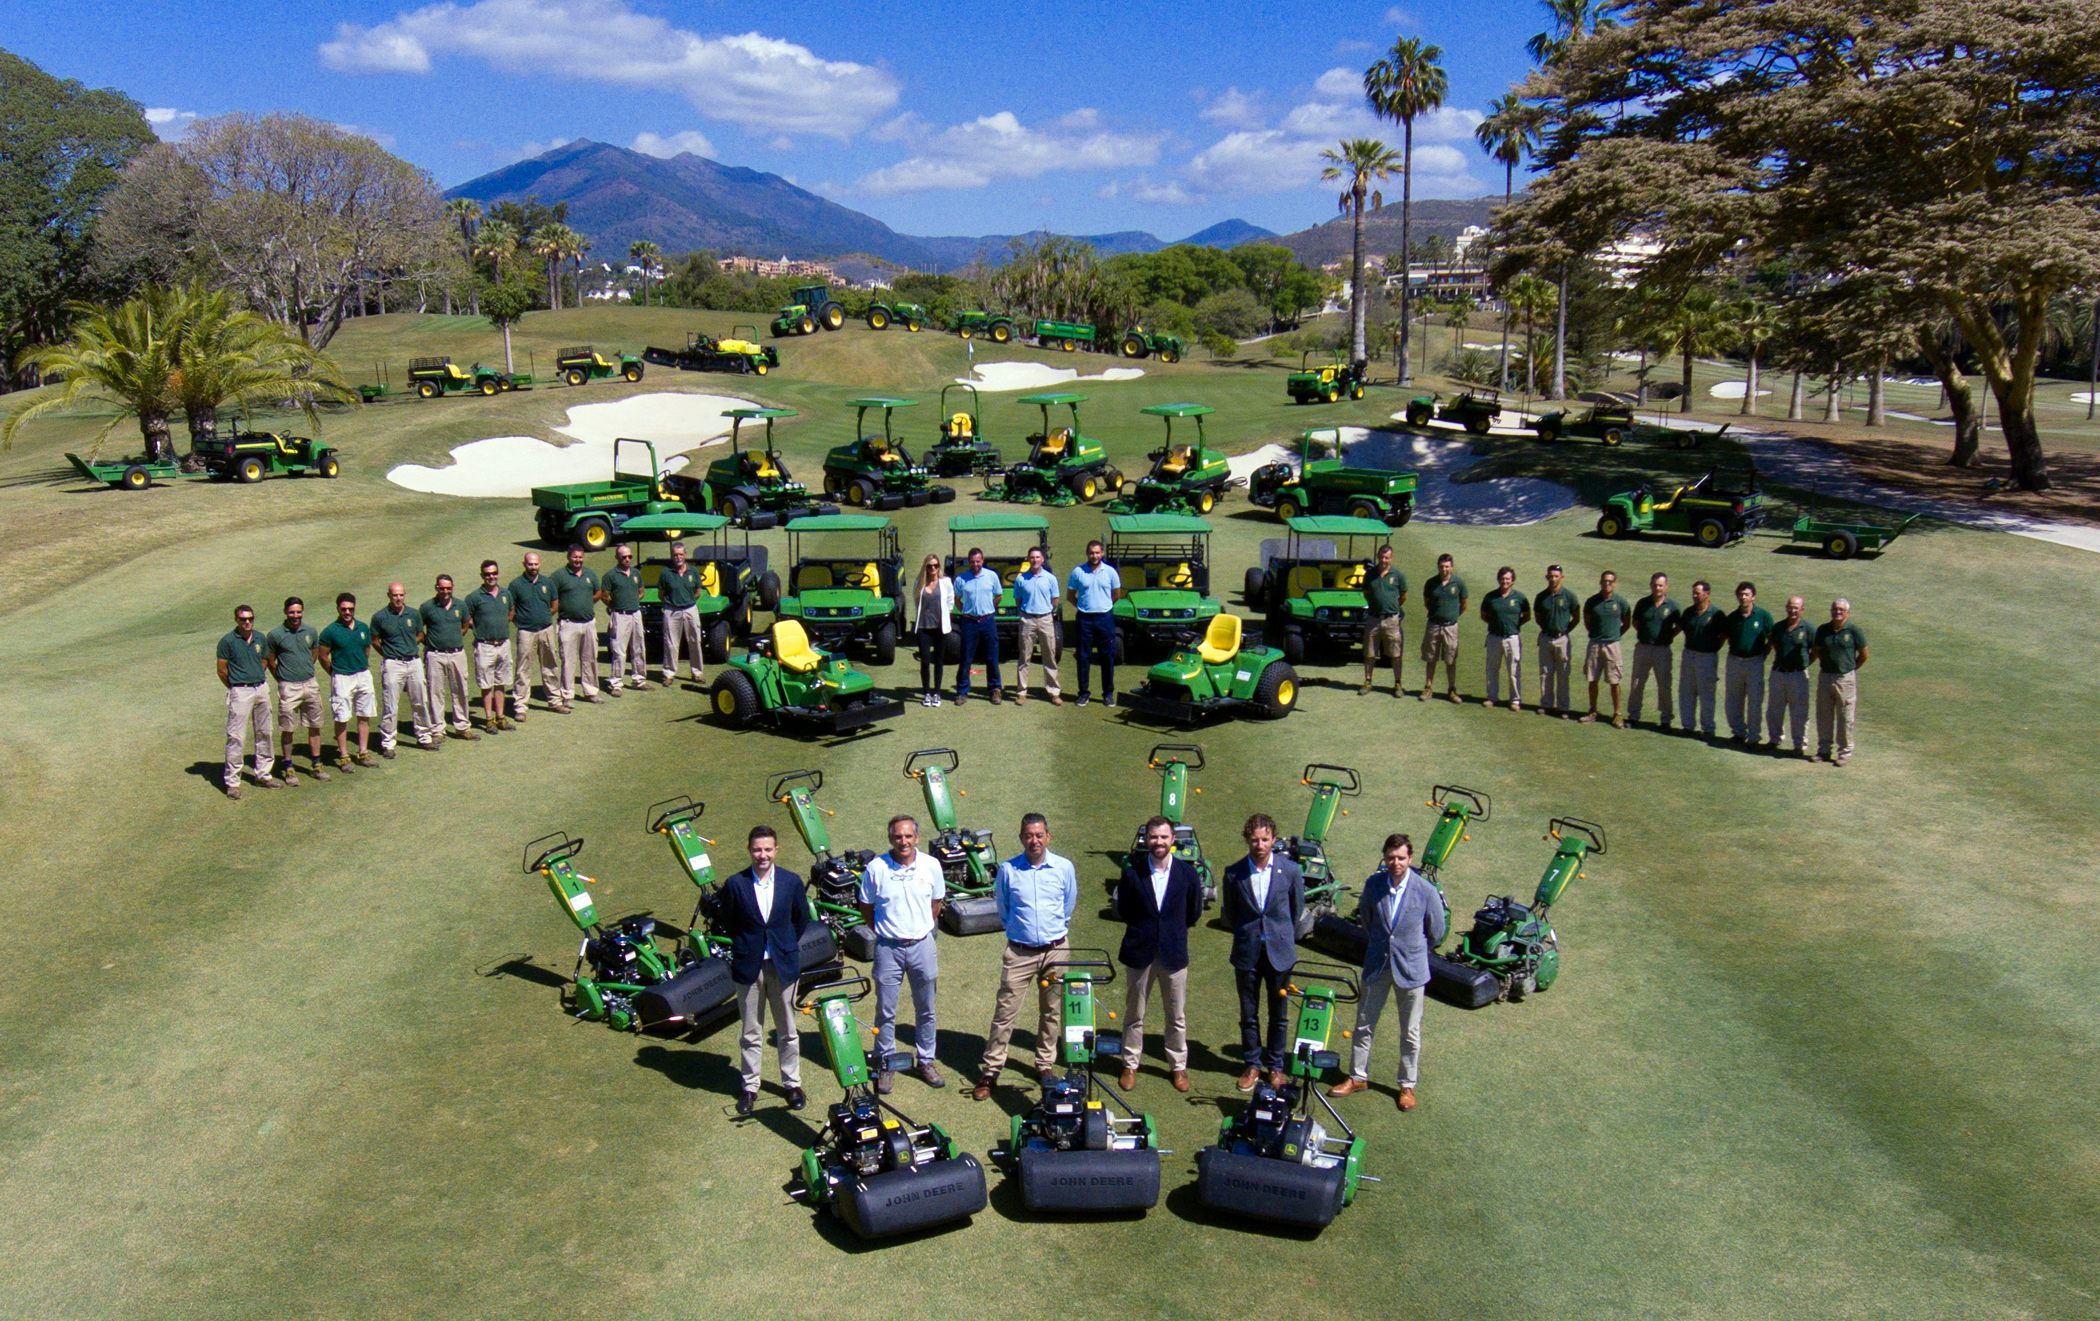 Real Club de Golf Las Brisas and John Deere staff with the new John Deere course maintenance equipment fleet.